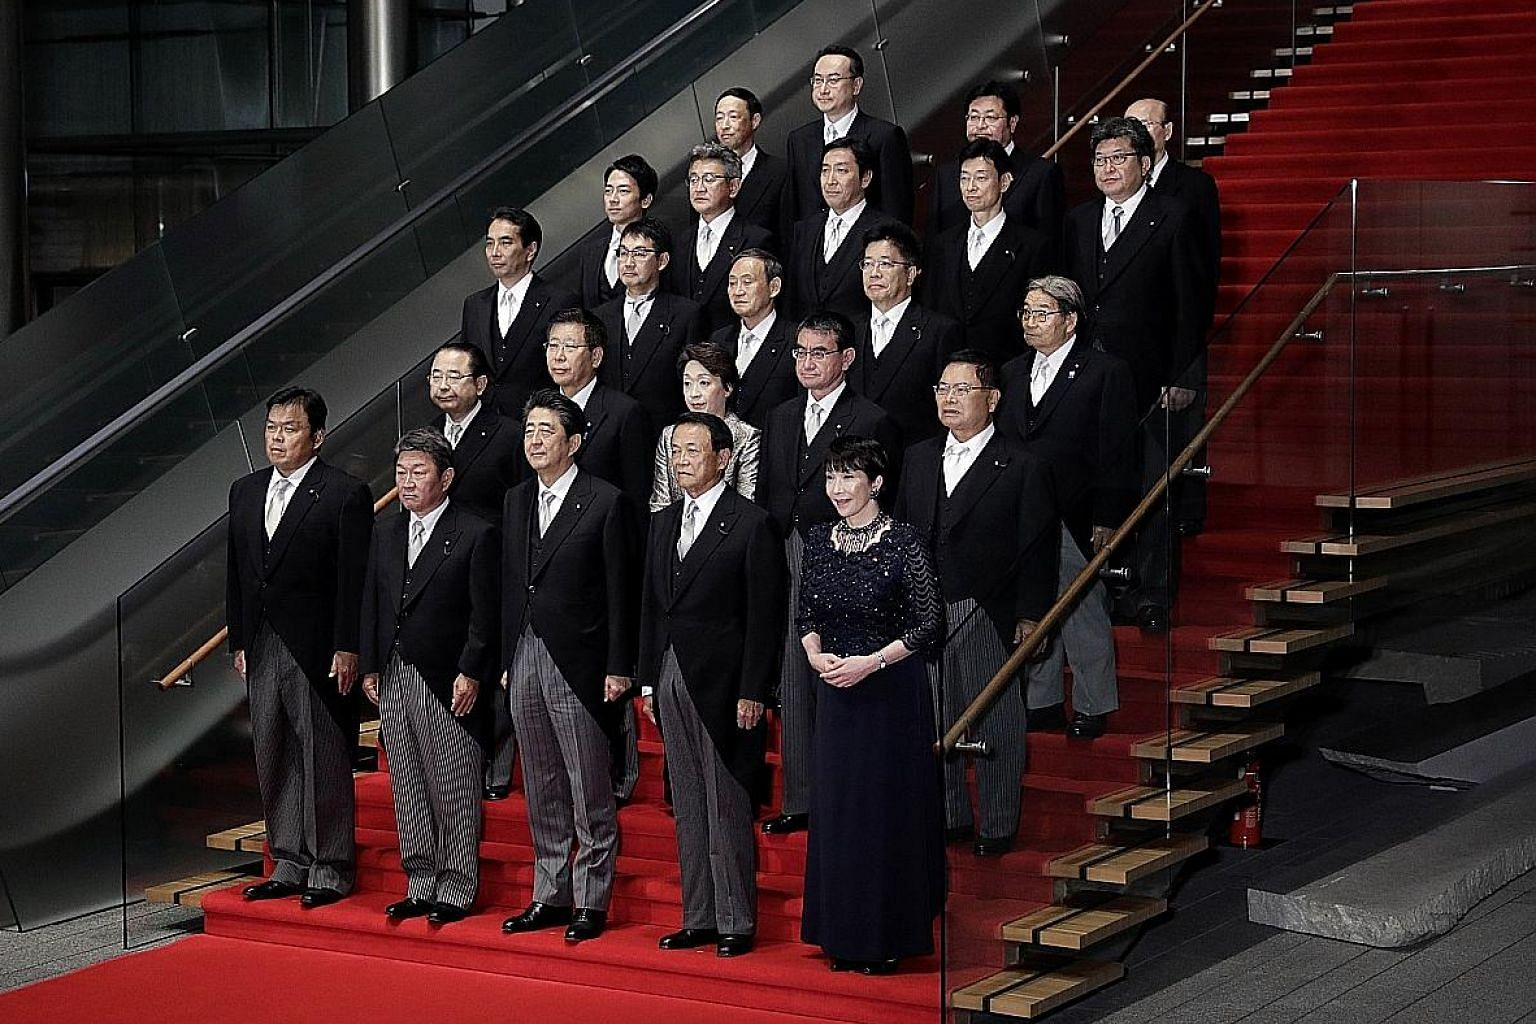 Japanese Prime Minister Shinzo Abe (front row, centre) with members of his new Cabinet in Tokyo on Wednesday. Experts see Mr Abe as attempting to revise, for the first time in history, Japan's pacifist charter by surrounding himself with those who ar